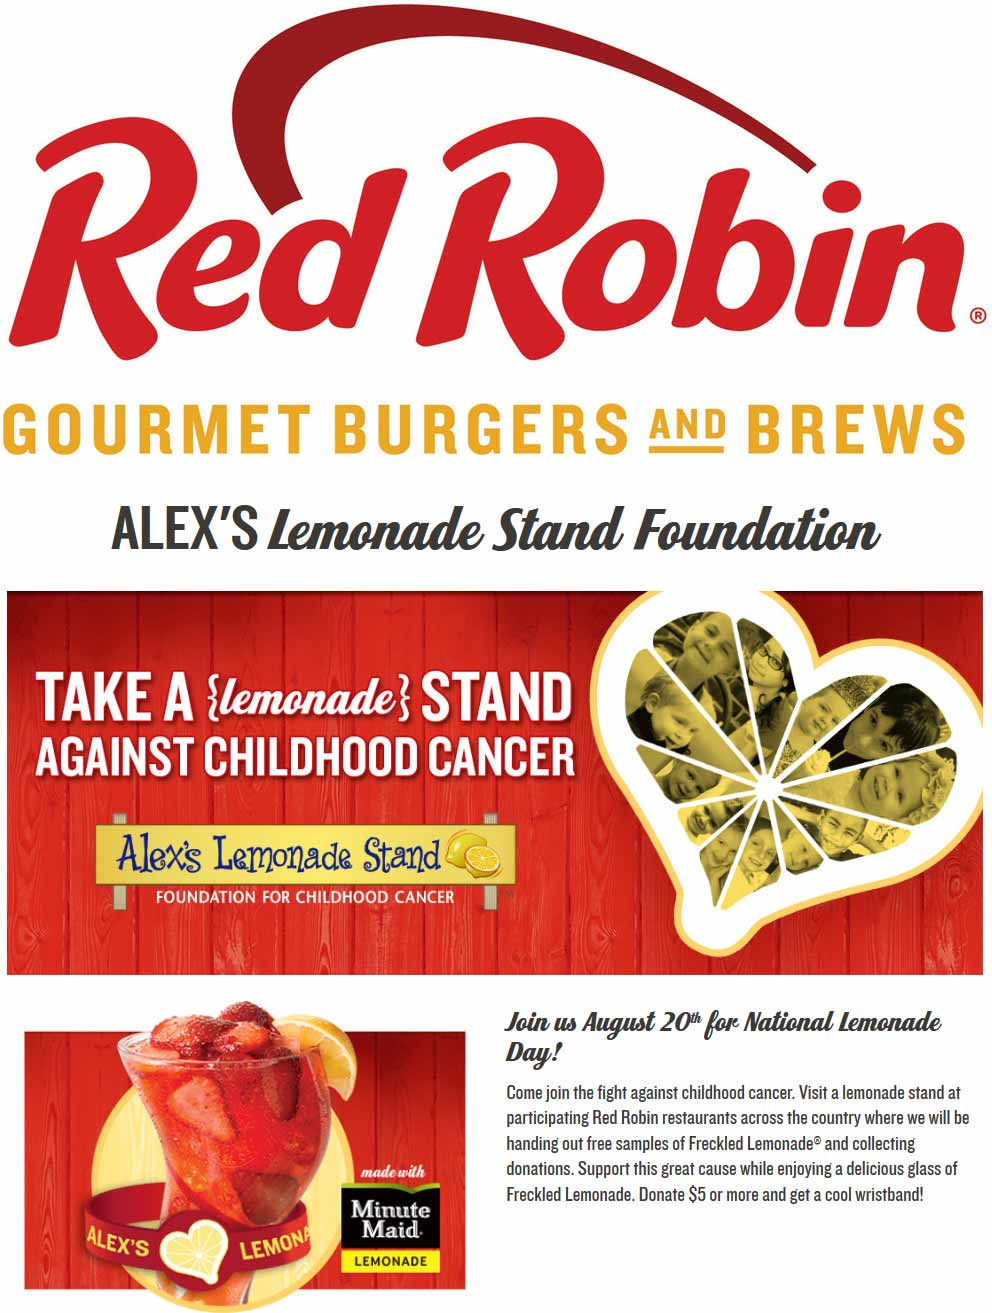 Red Robin Coupon August 2017 Free lemonade for charity Saturday at Red Robin restaurants